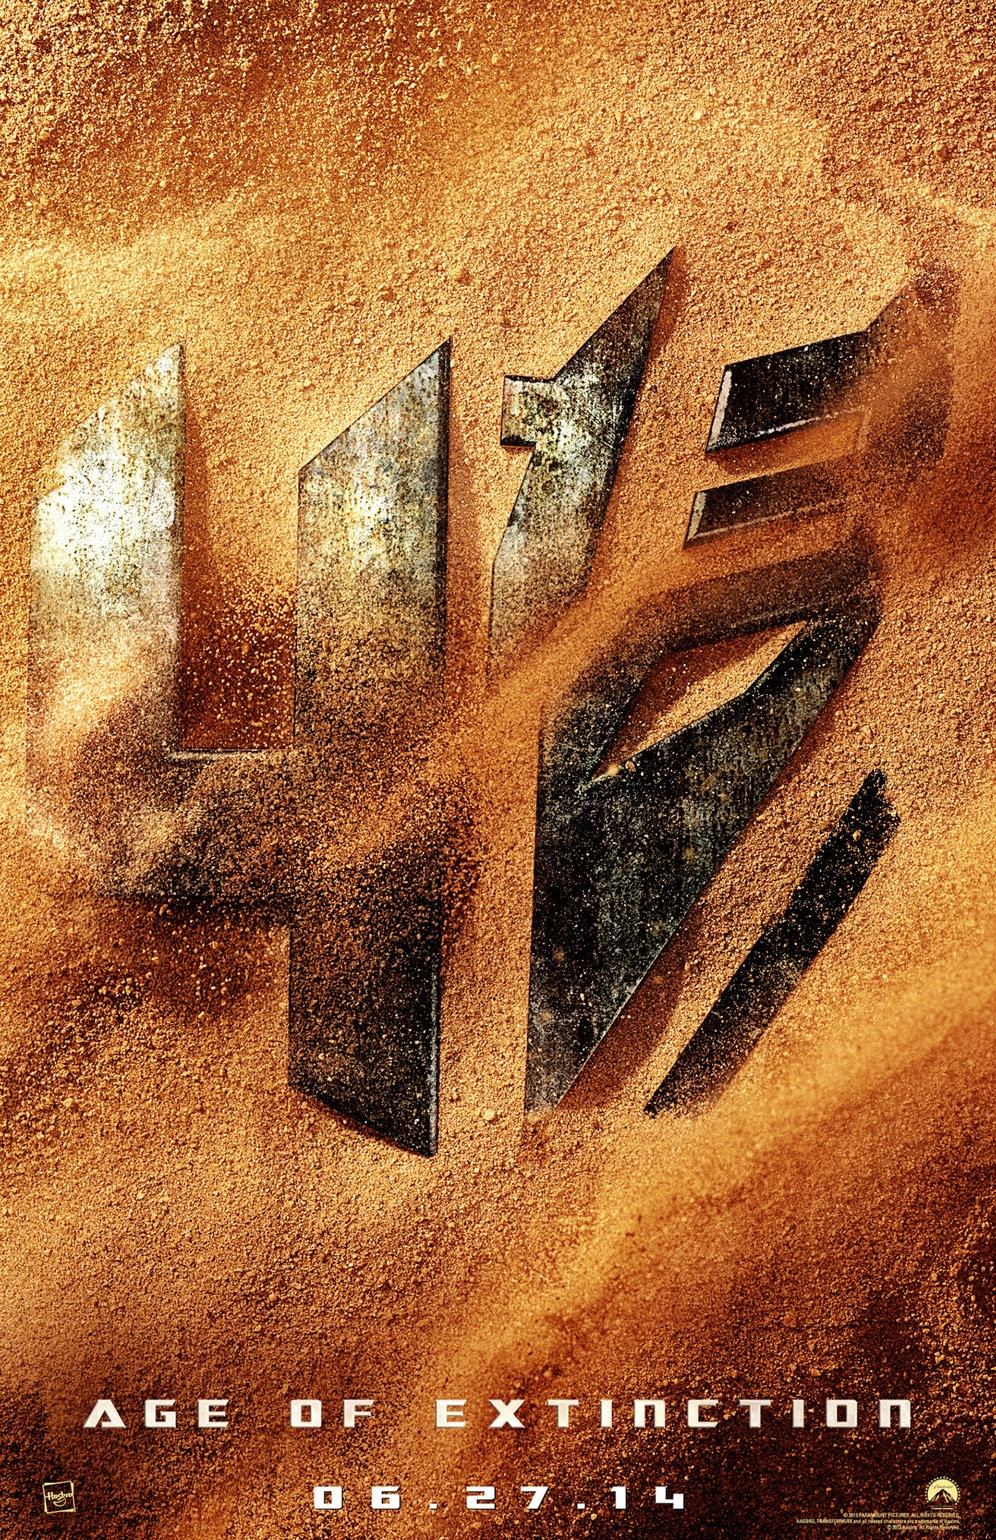 Transformers Age of Extinction Fandango Debuts Exclusive Transformers: Age of Extinction Clip